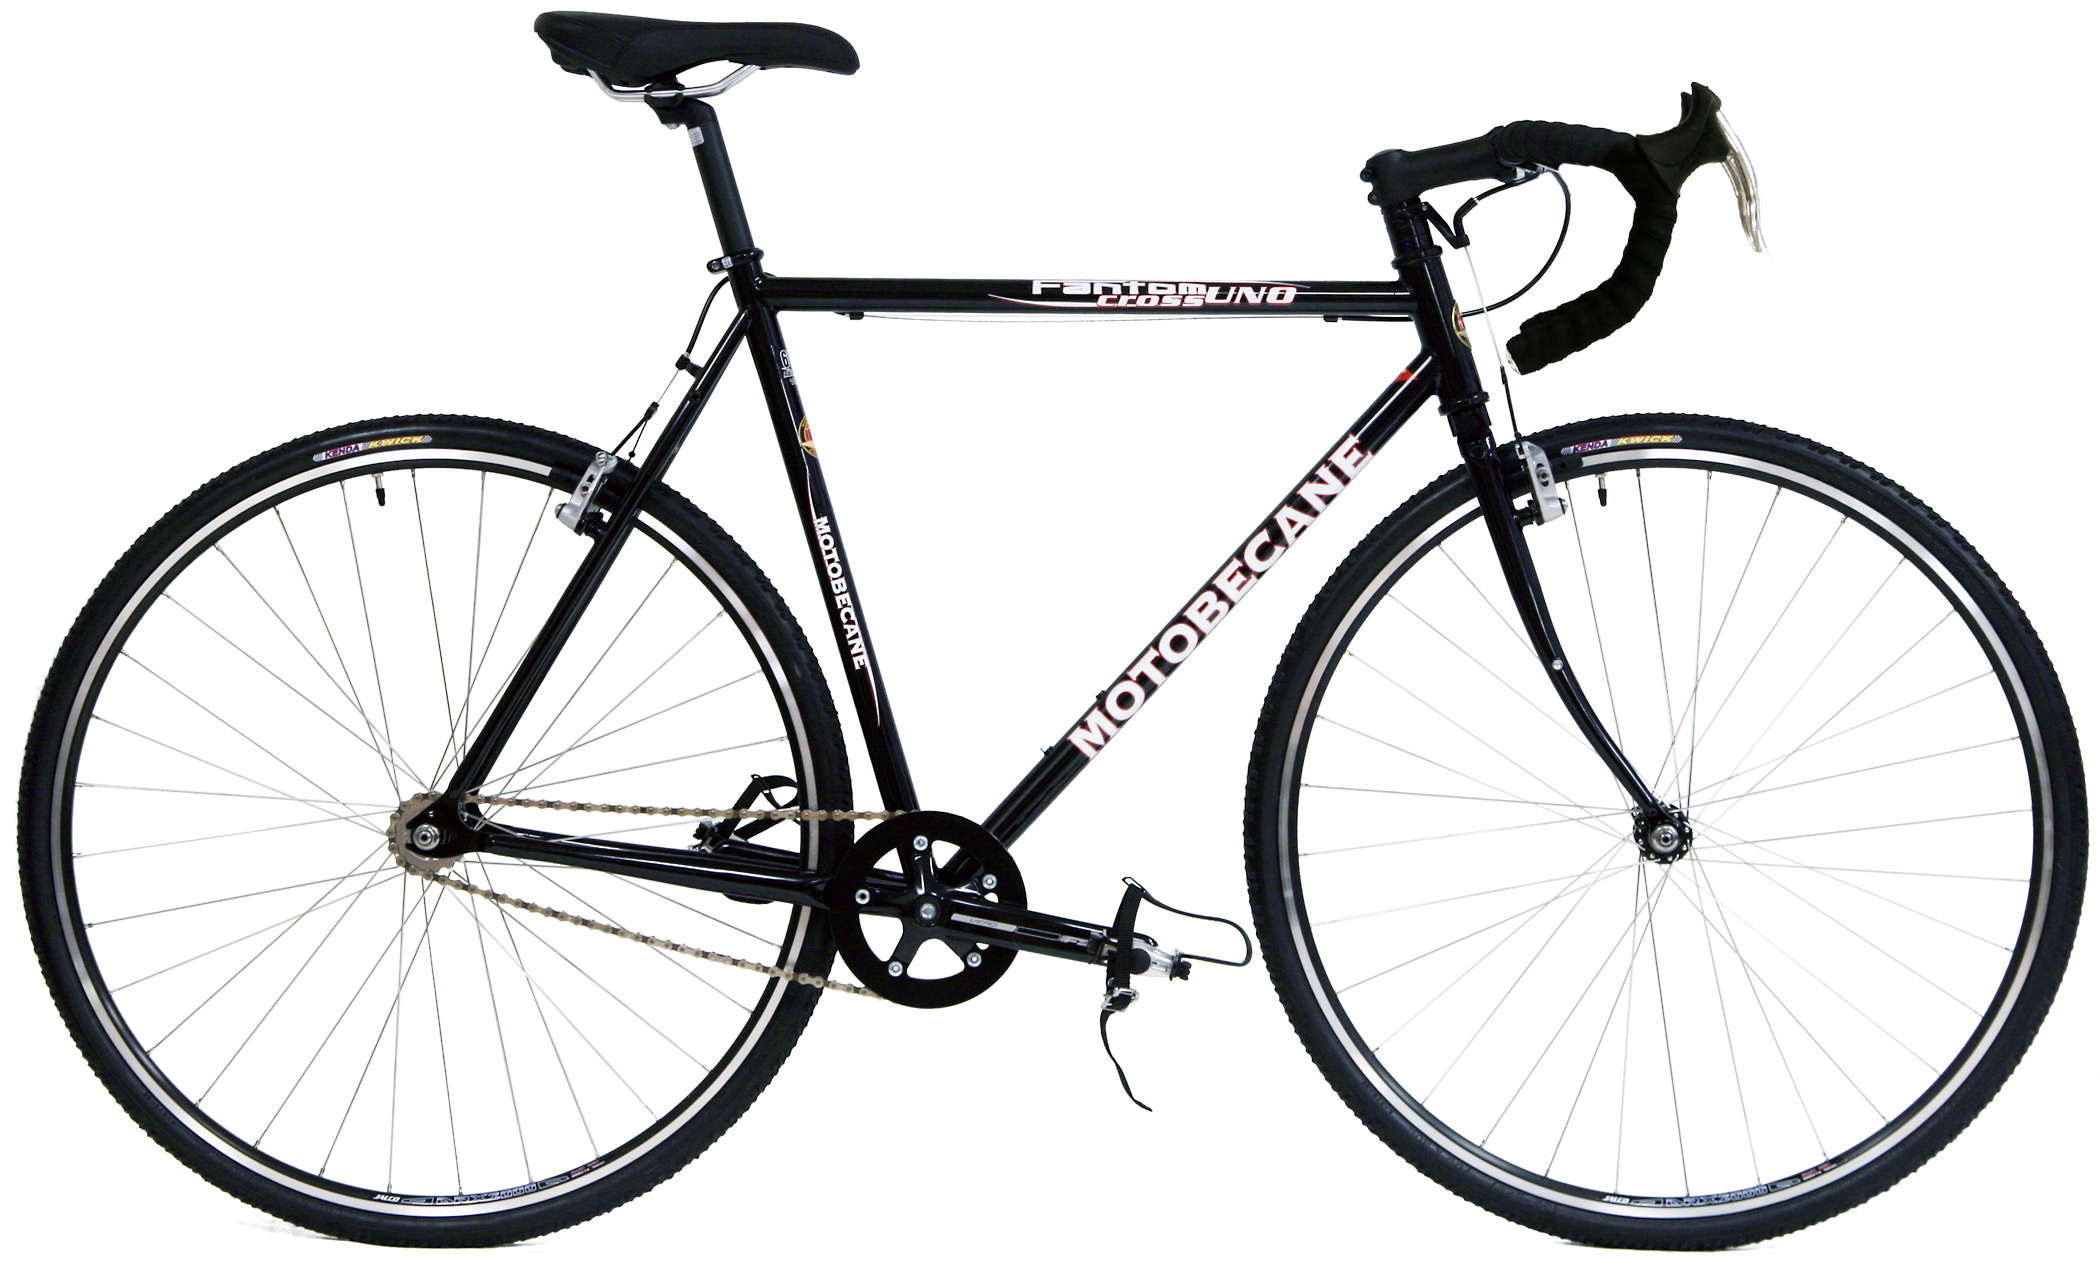 Bikesdirect Motobecane Reviews Motobecane Fantom Cross UNO